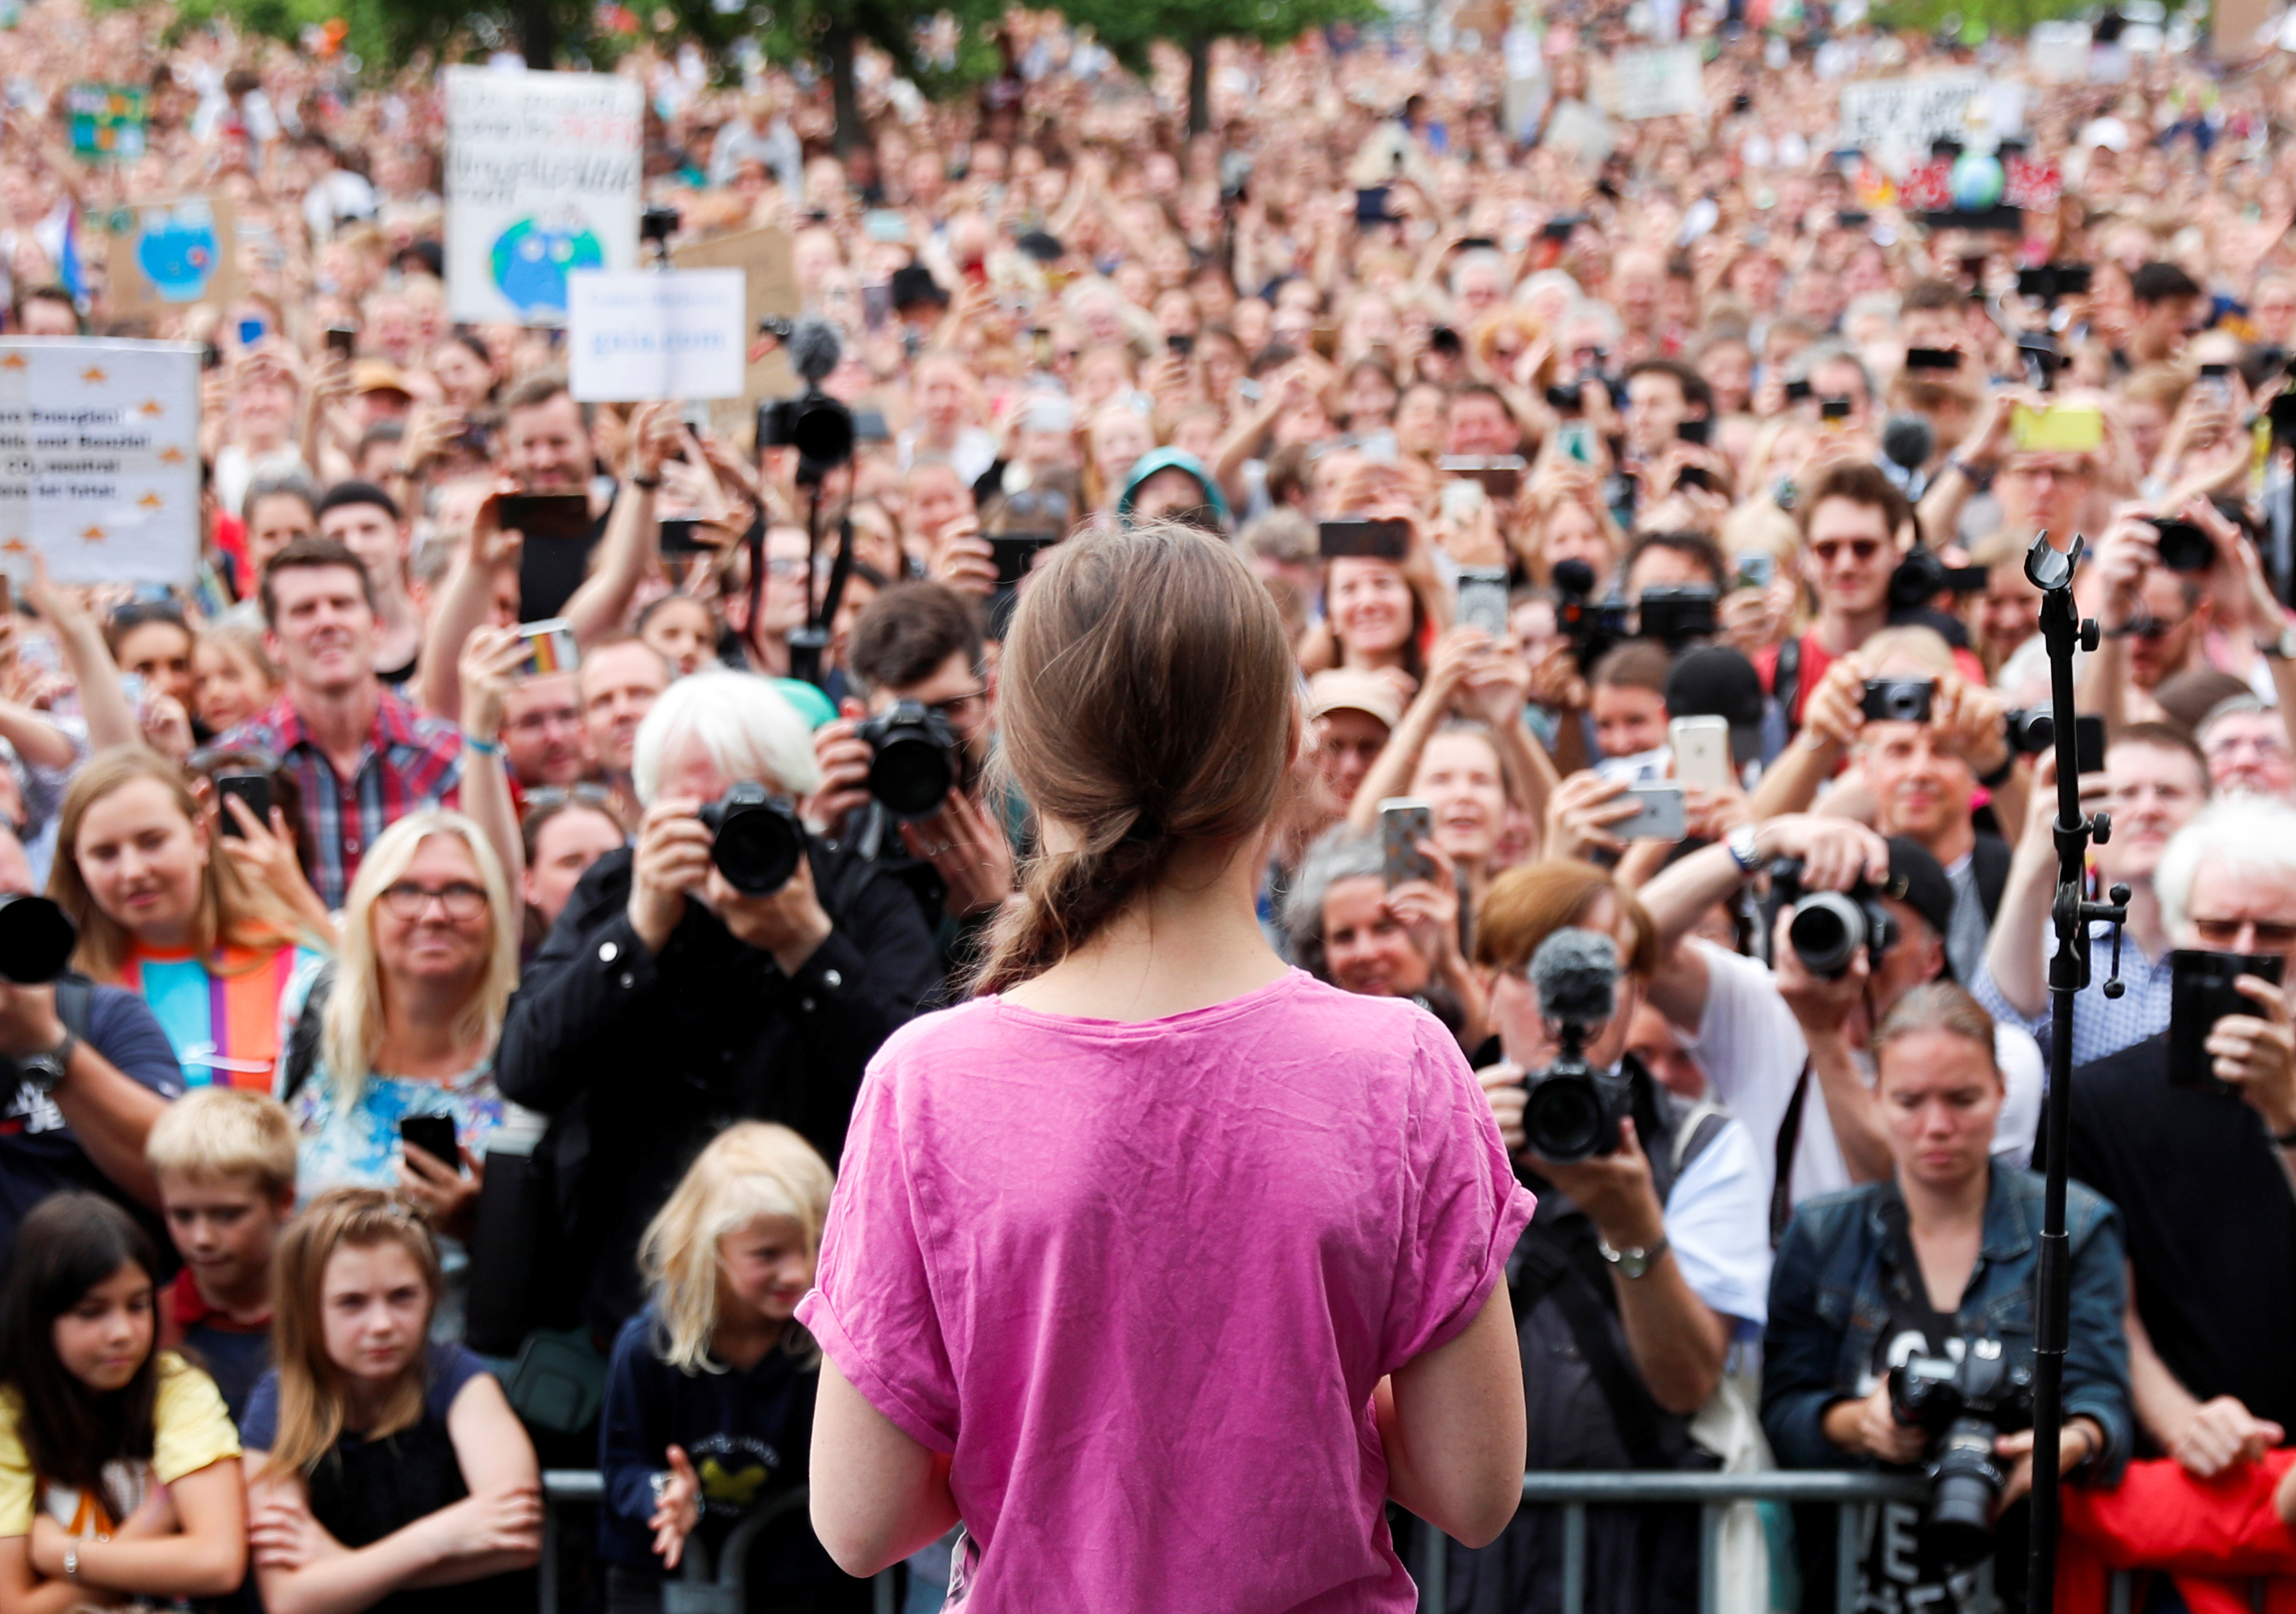 """Swedish environmental activist Greta Thunberg attends """"Fridays for Future"""" protest, claiming for urgent measures to combat climate change, in Berlin, Germany, July 19, 2019. REUTERS/Fabrizio Bensch"""